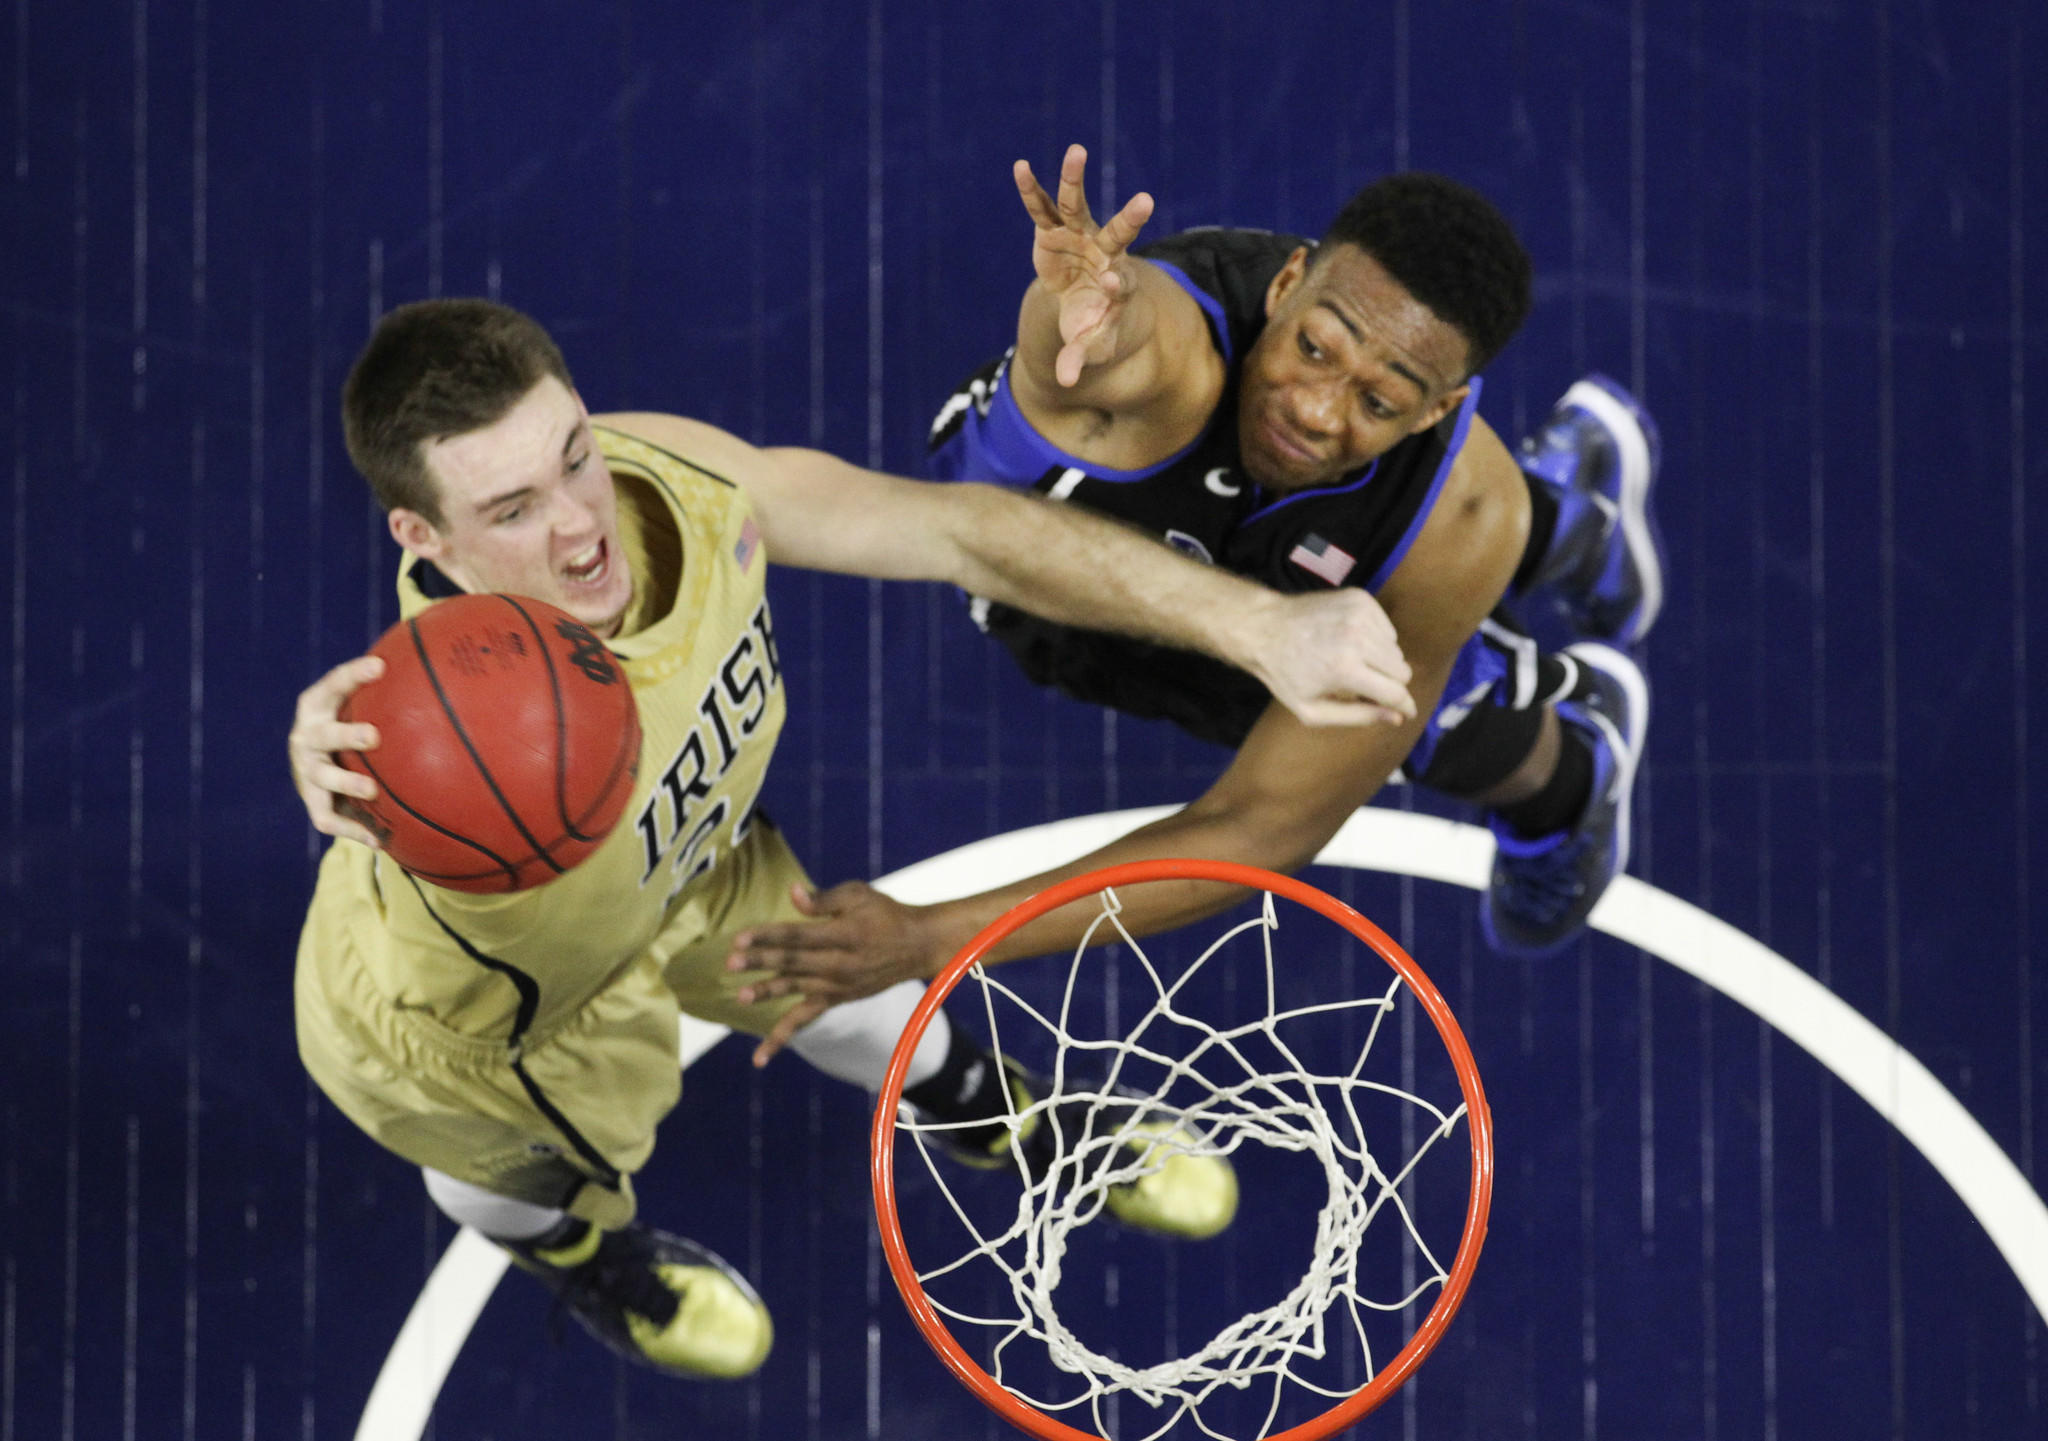 During a game in January, Duke's Jabari Parker (right) attempts to block Notre Dame forward Pat Connaughton.